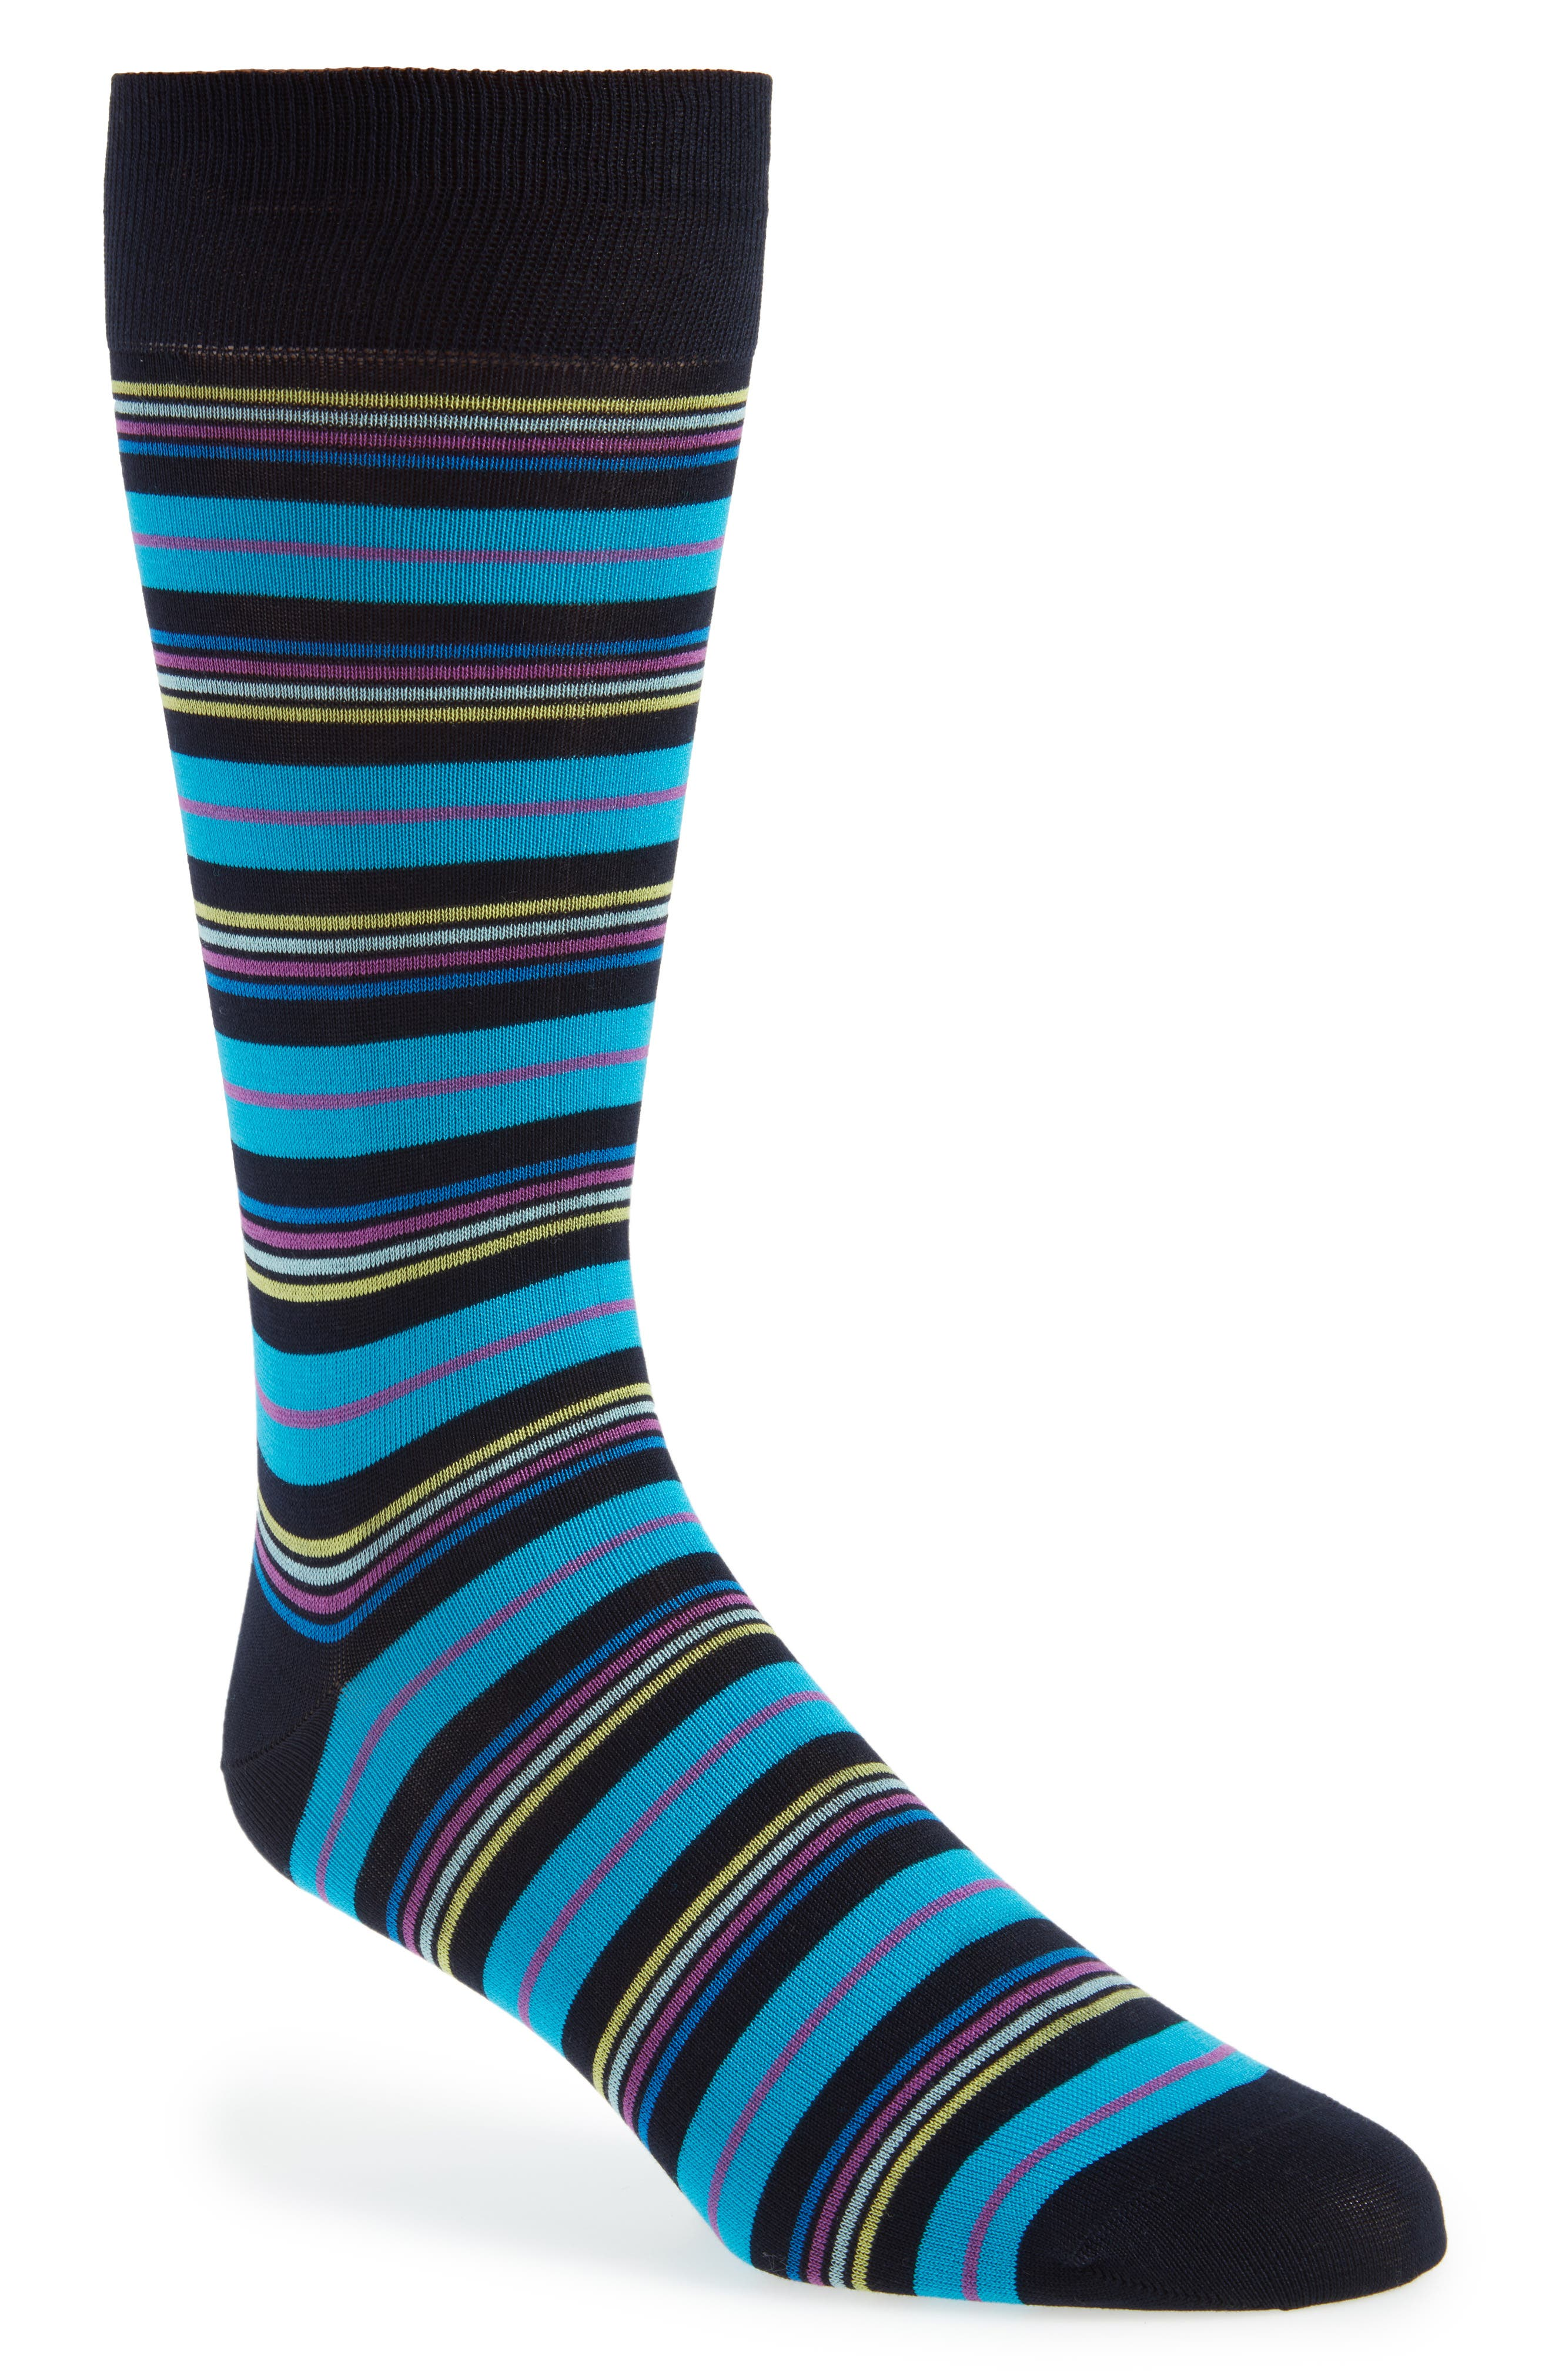 Multistripe Socks,                             Main thumbnail 1, color,                             Navy